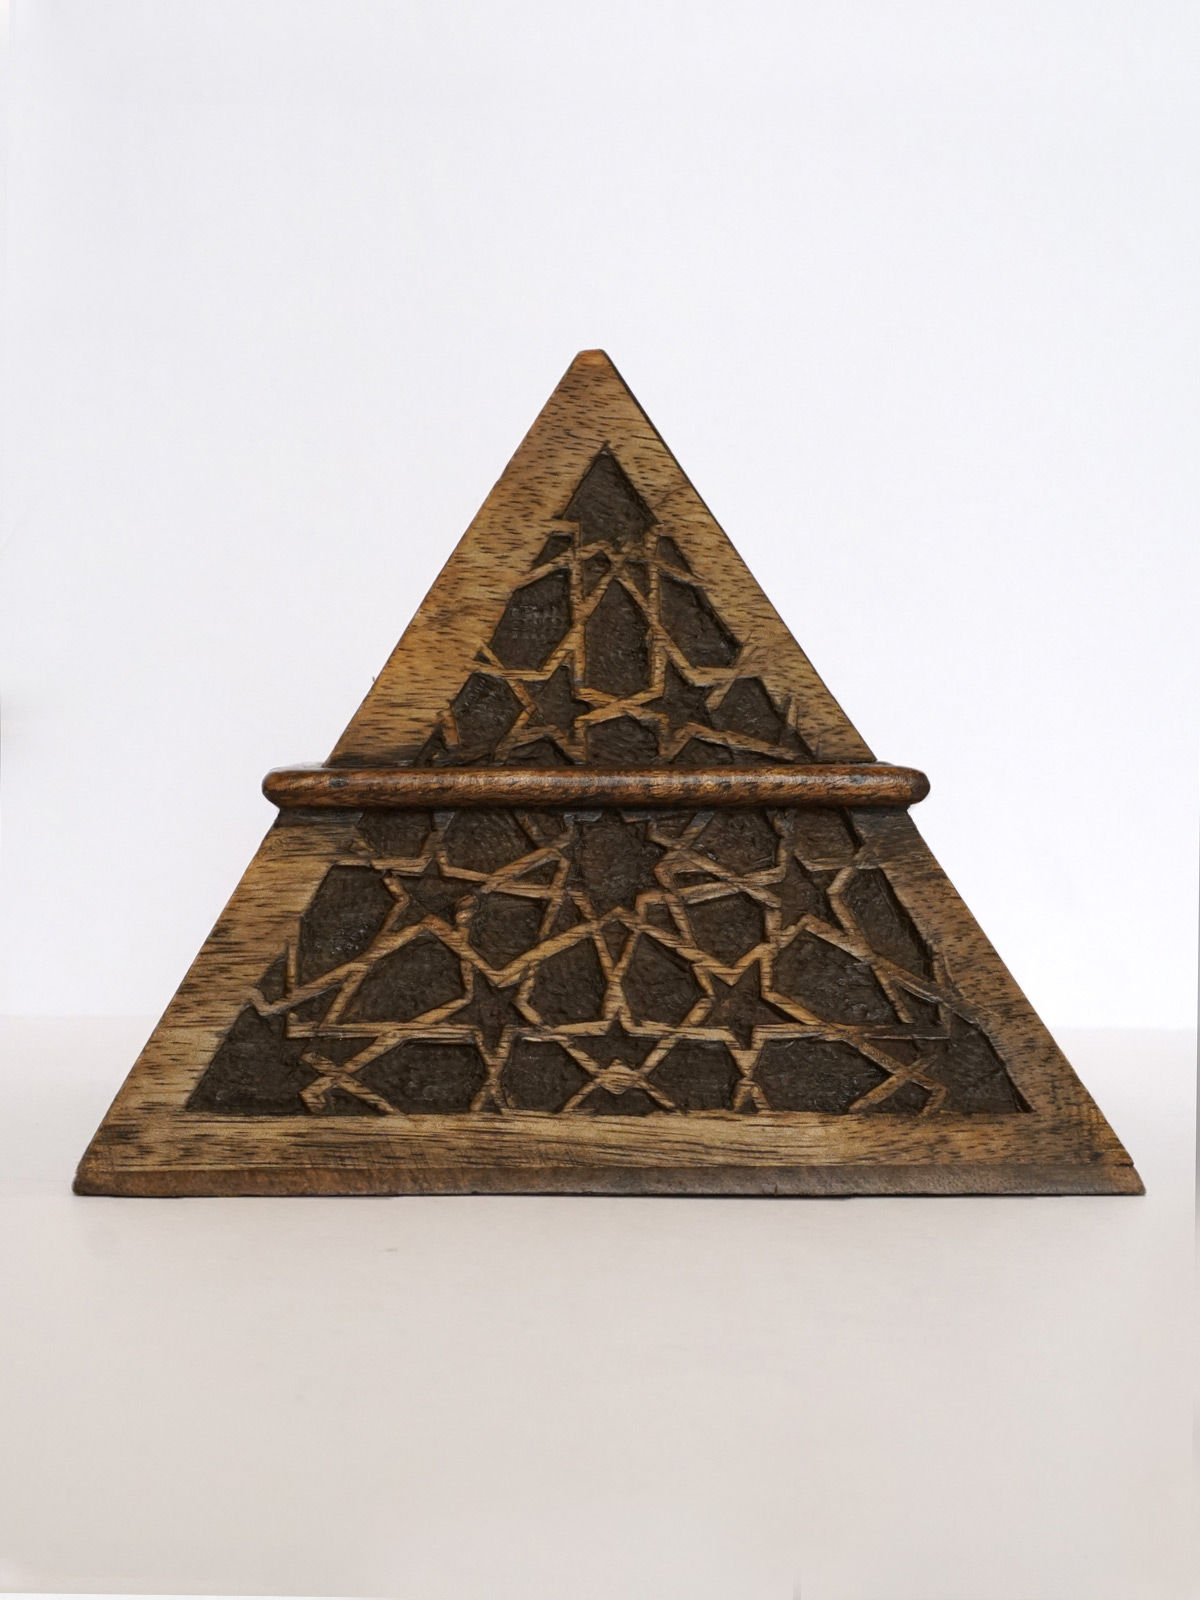 INTHING Pyramid  Carved Star